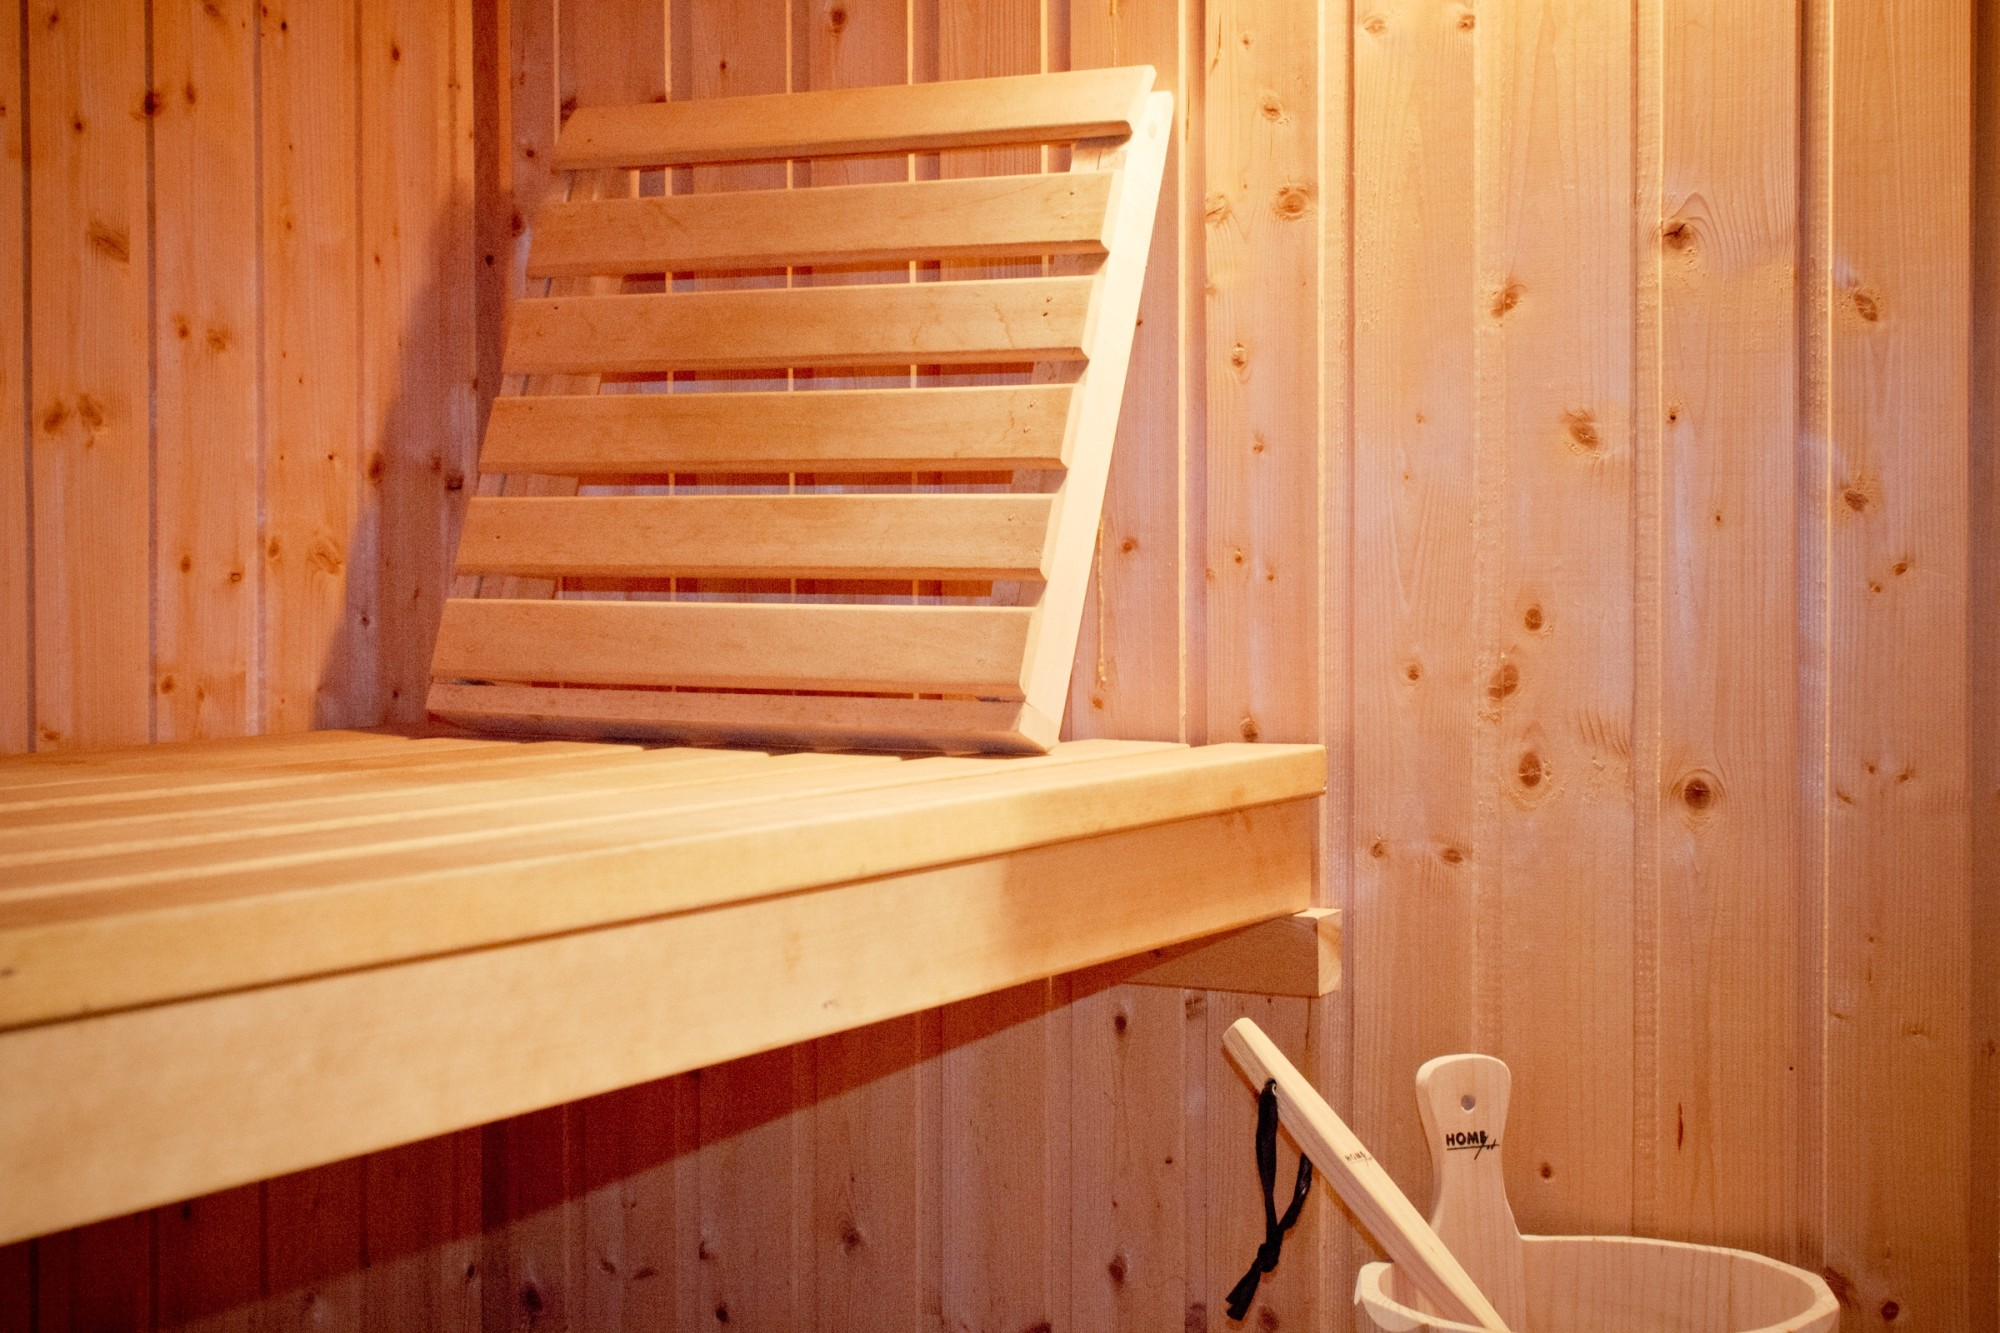 9 Possible Health and Immunity Benefits From Using Saunas Regularly